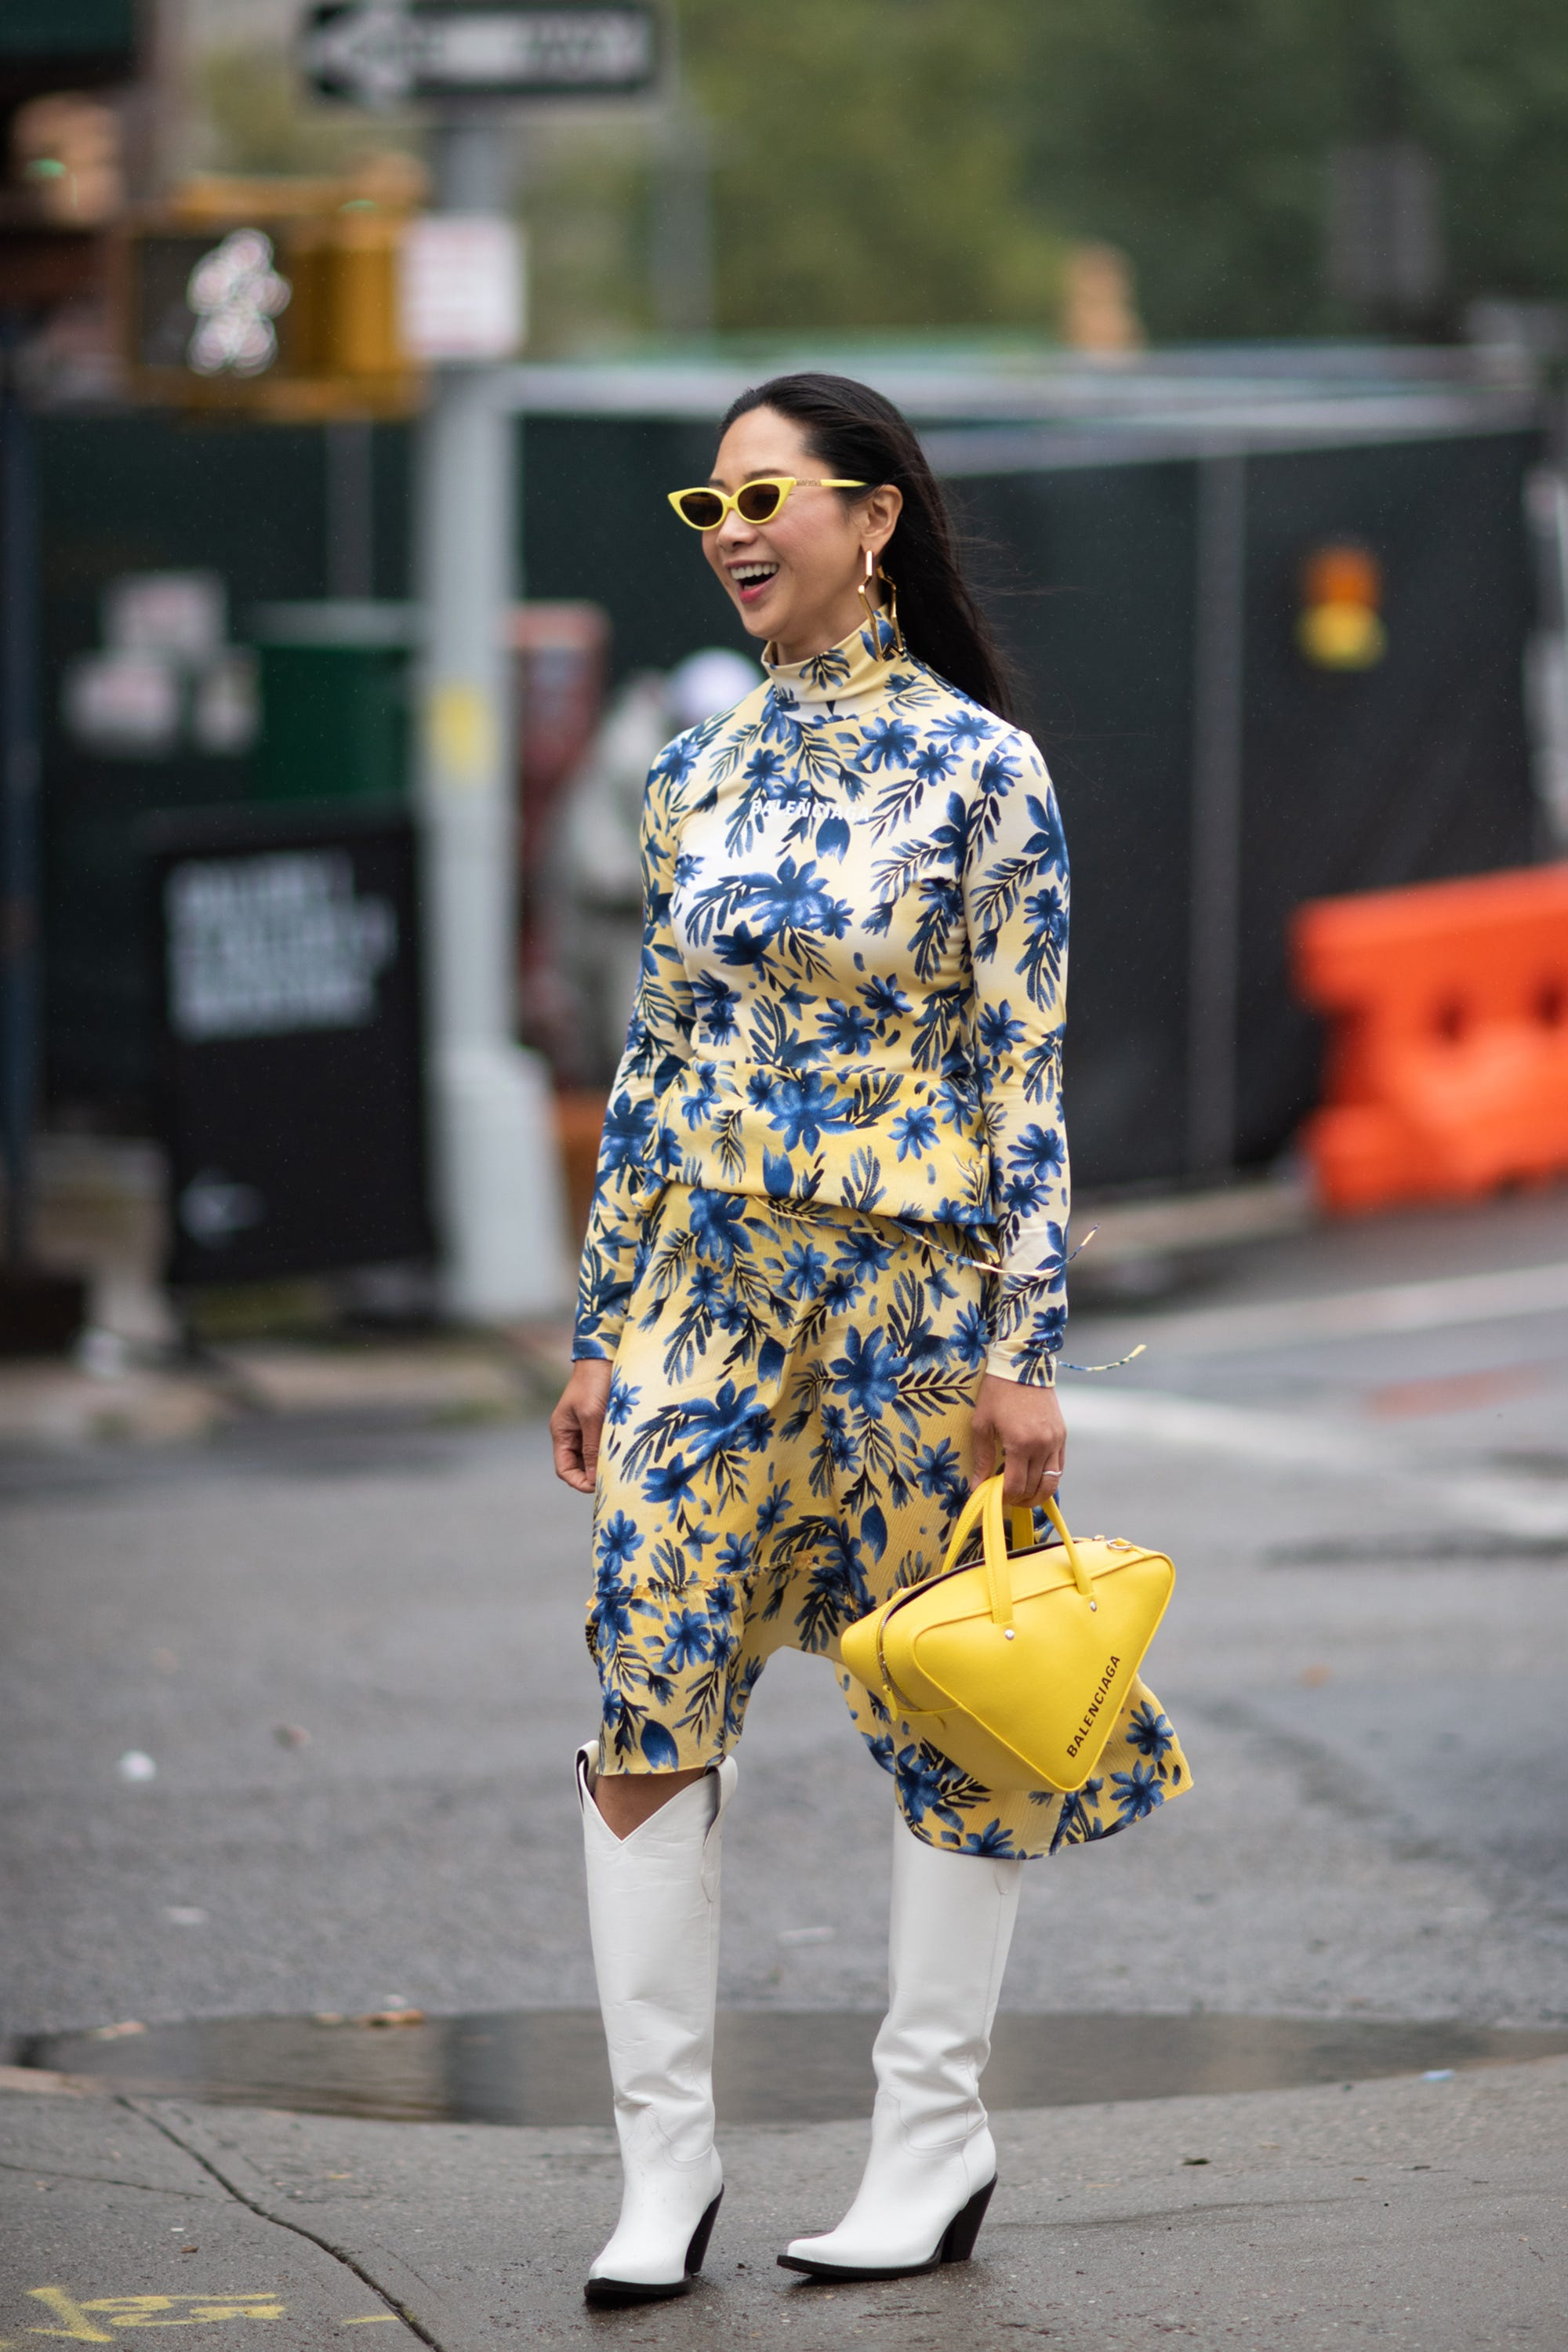 Watch The Cute New Collaboration Street Style Stars Love video